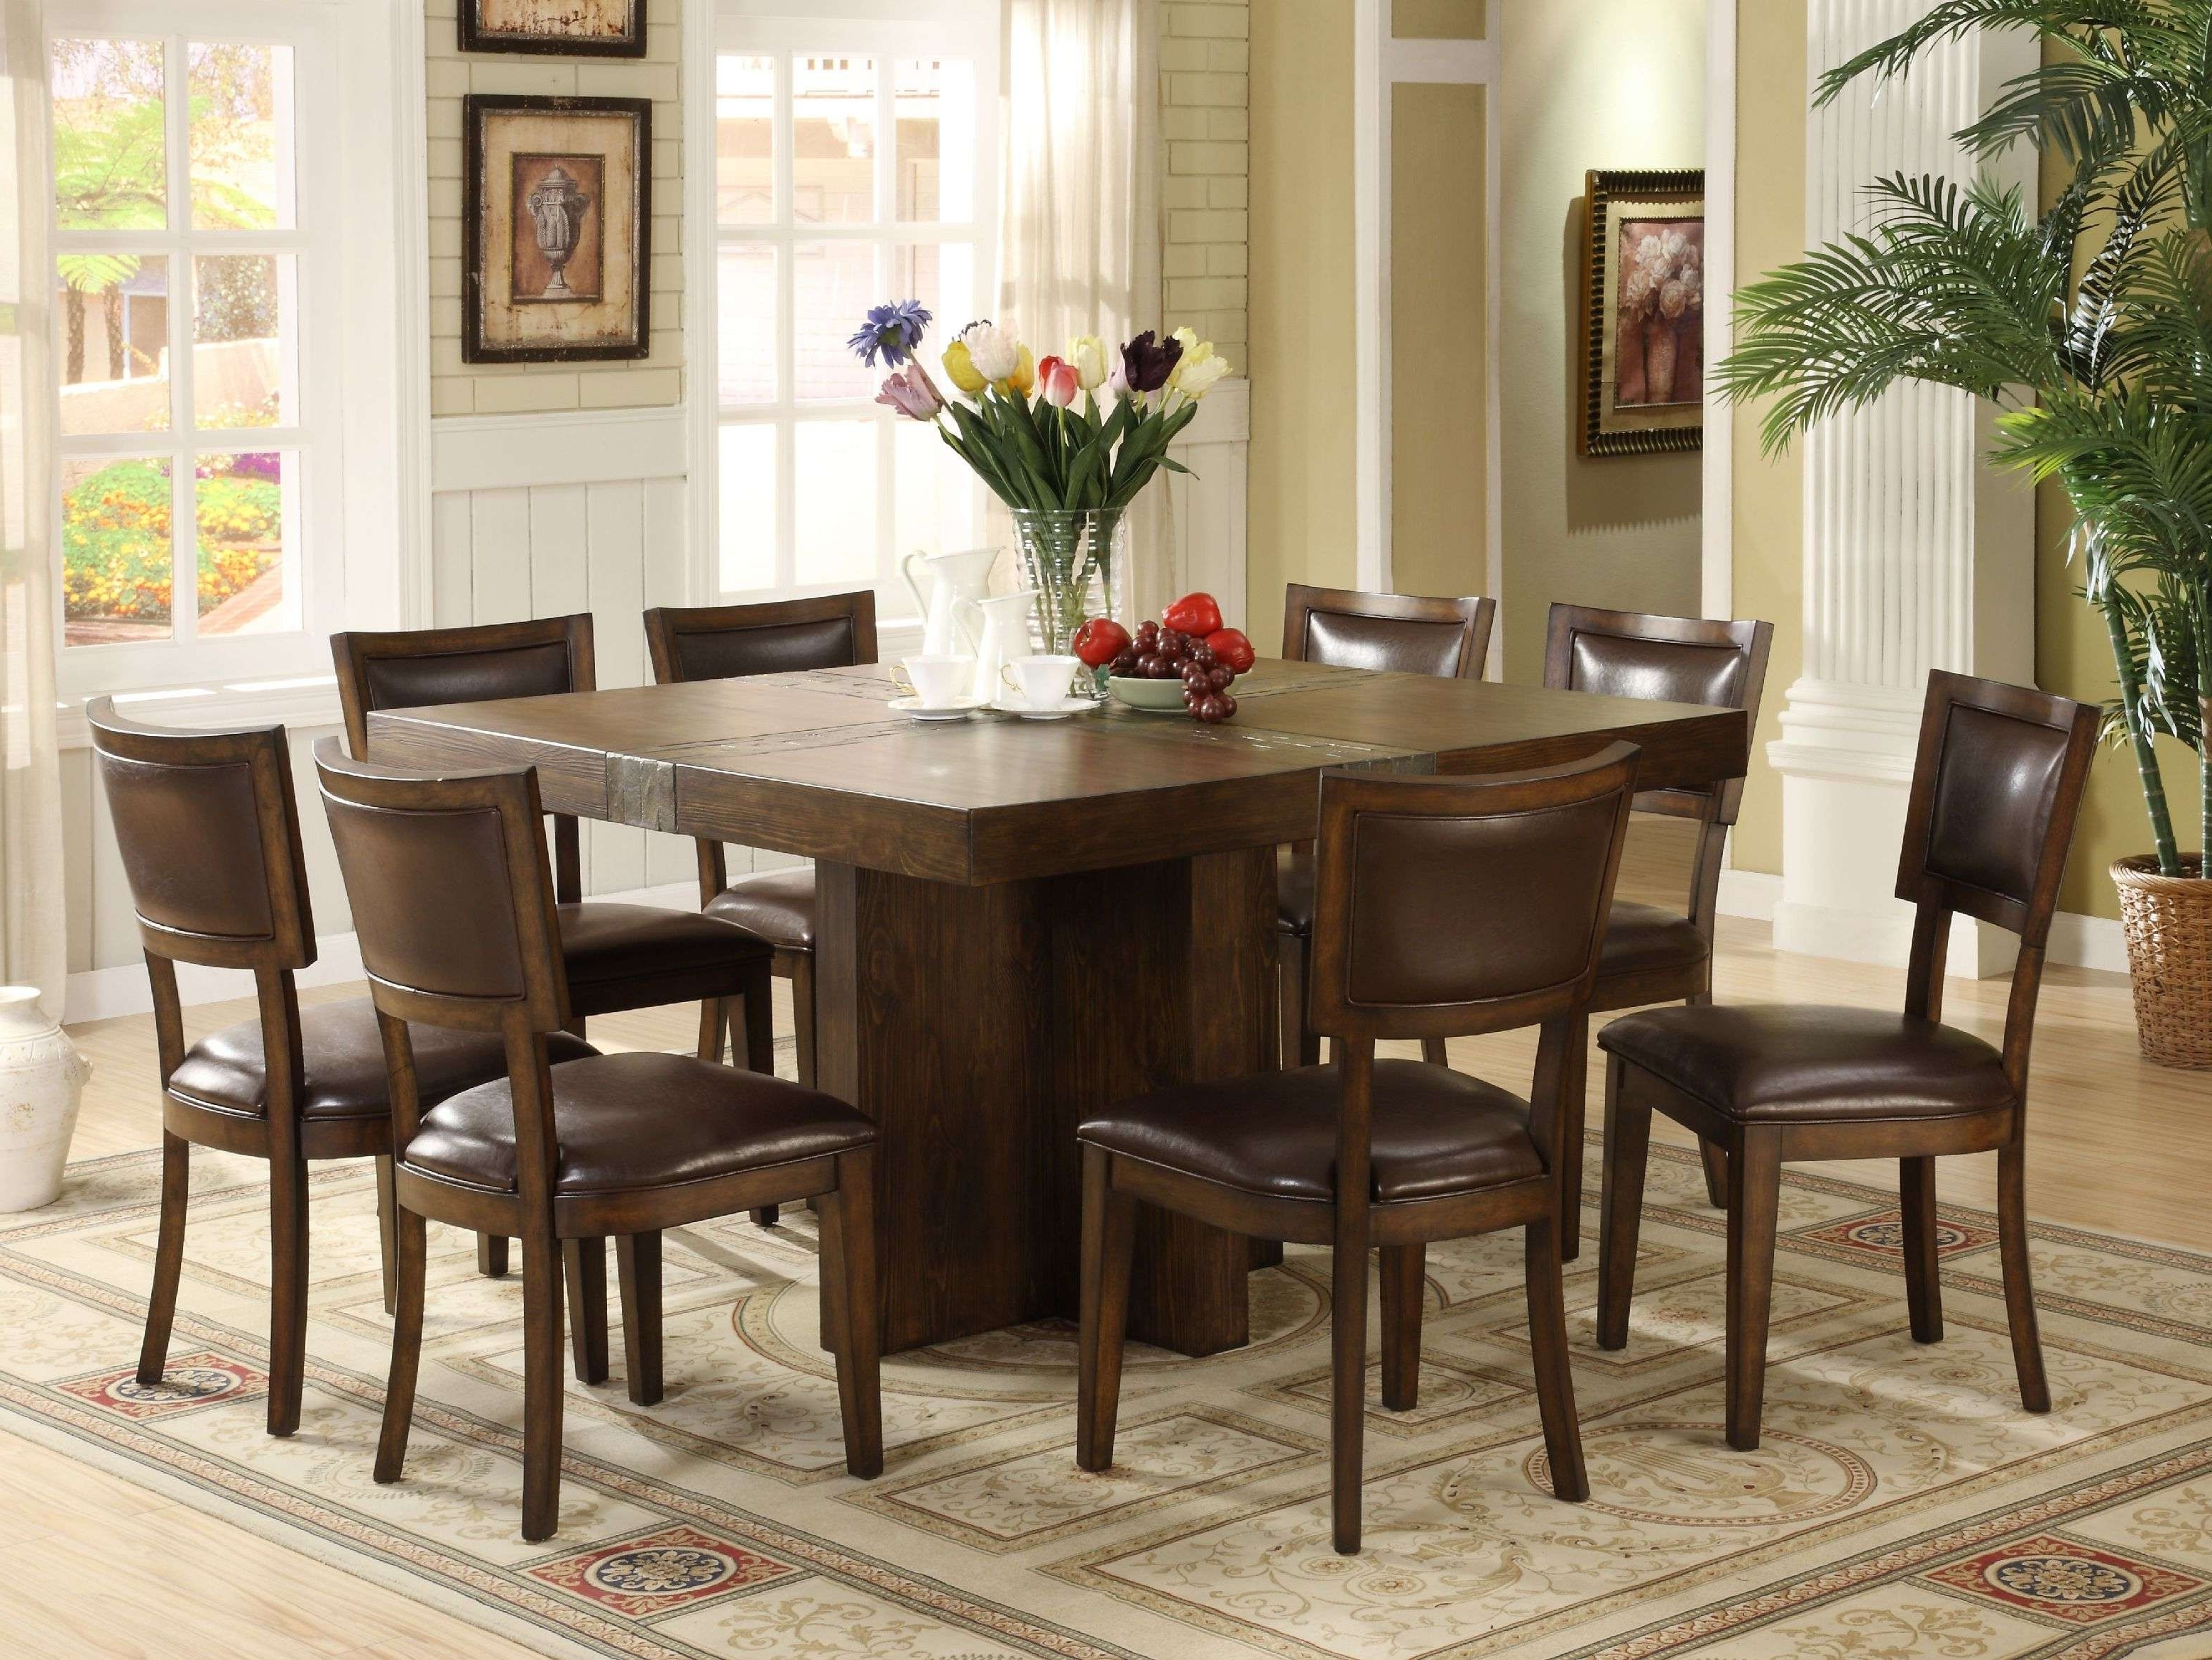 8 Seater Dining Tables And Chairs with Preferred 10 Seater Dining Table And Chairs Beautiful Best 8 Seater Dining